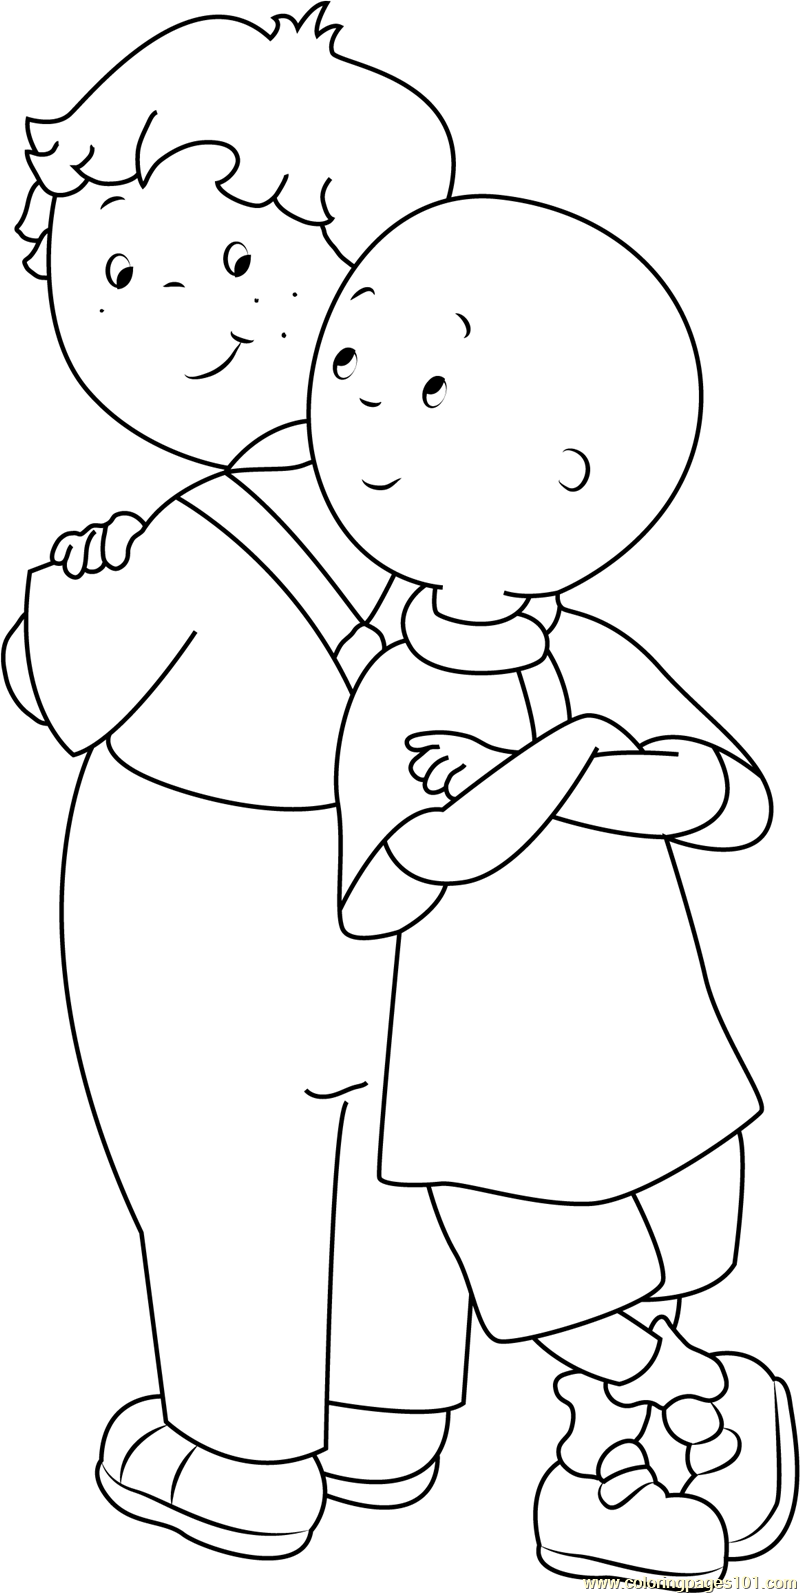 gandhiji standing coloring pages - photo#40